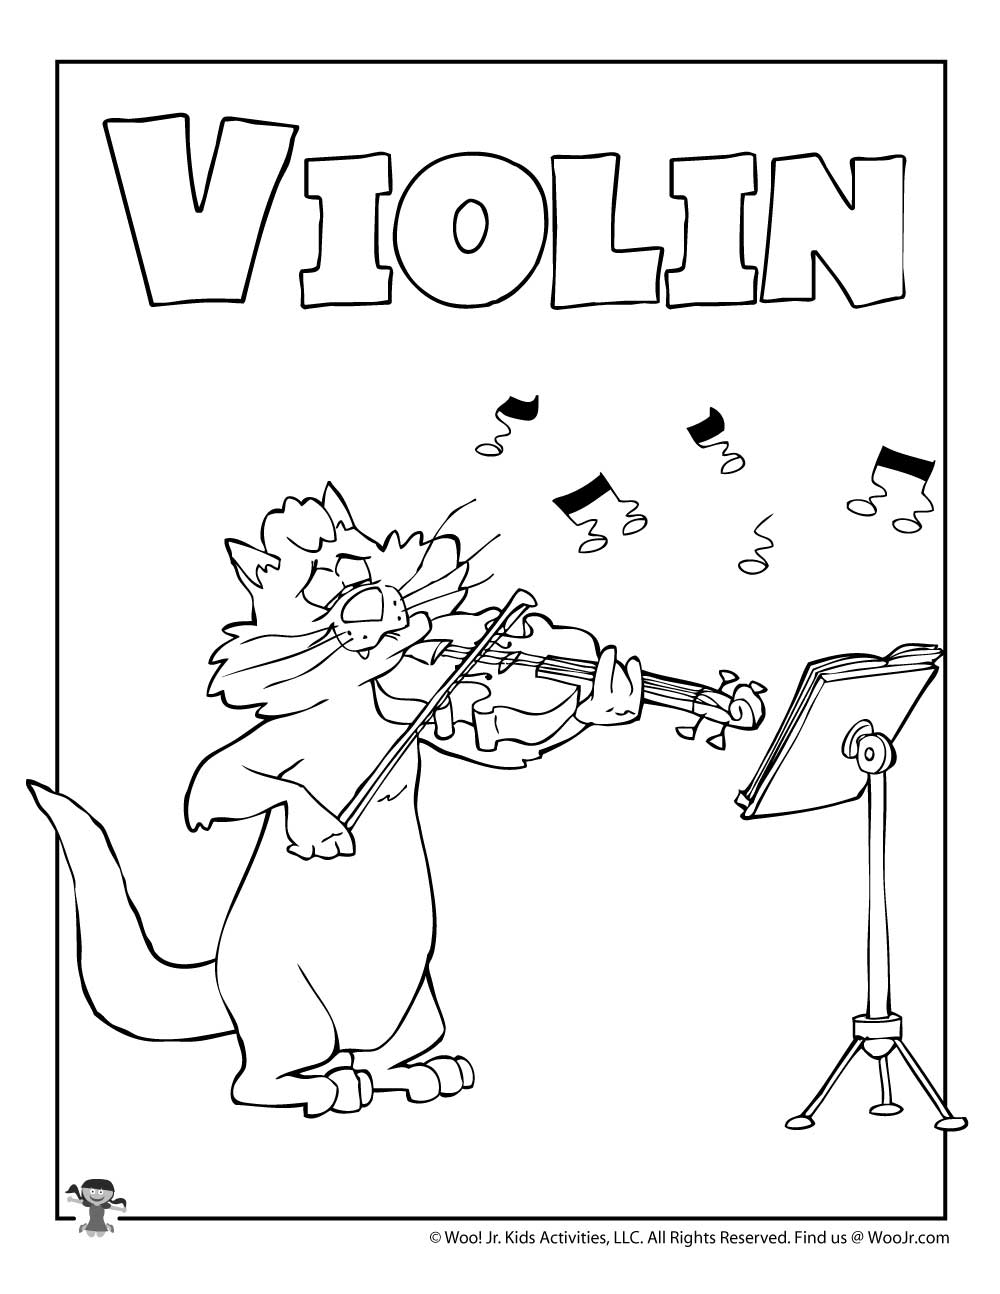 V is for Violin Coloring Page | Woo! Jr. Kids Activities